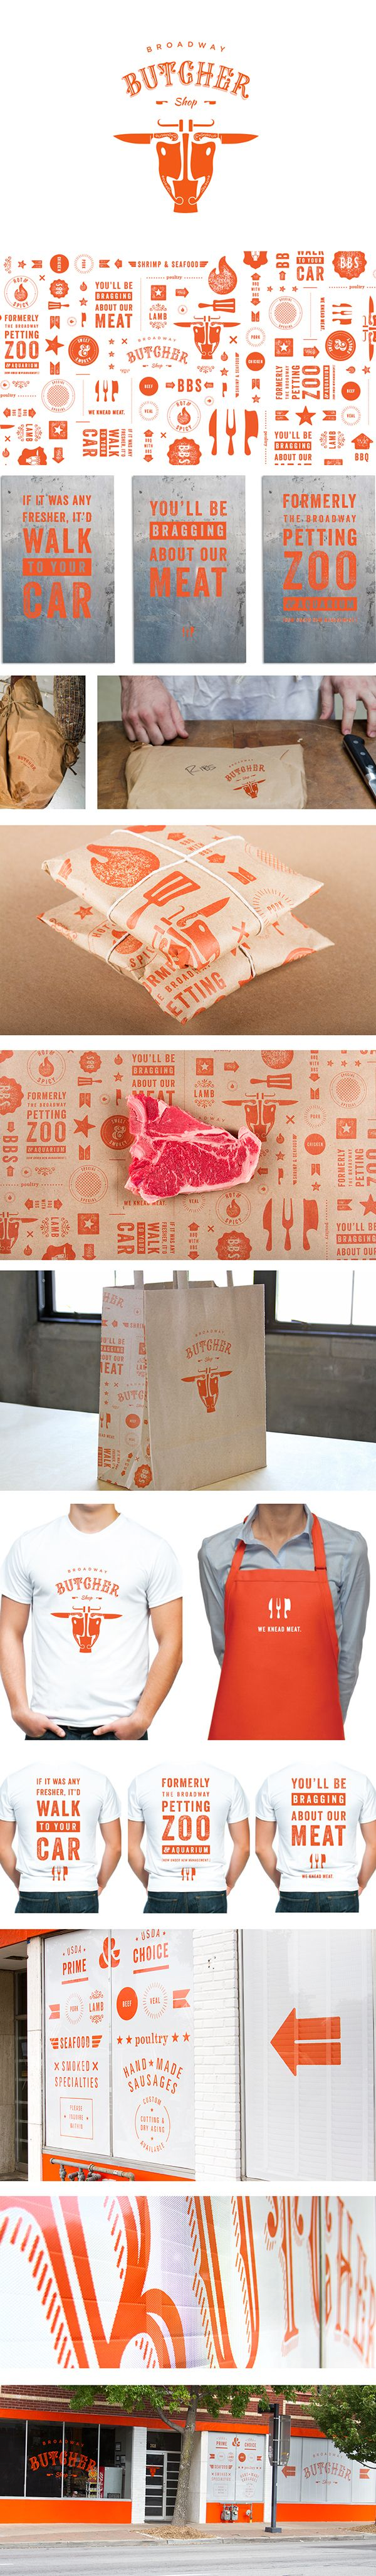 14 best Butcher shop images on Pinterest